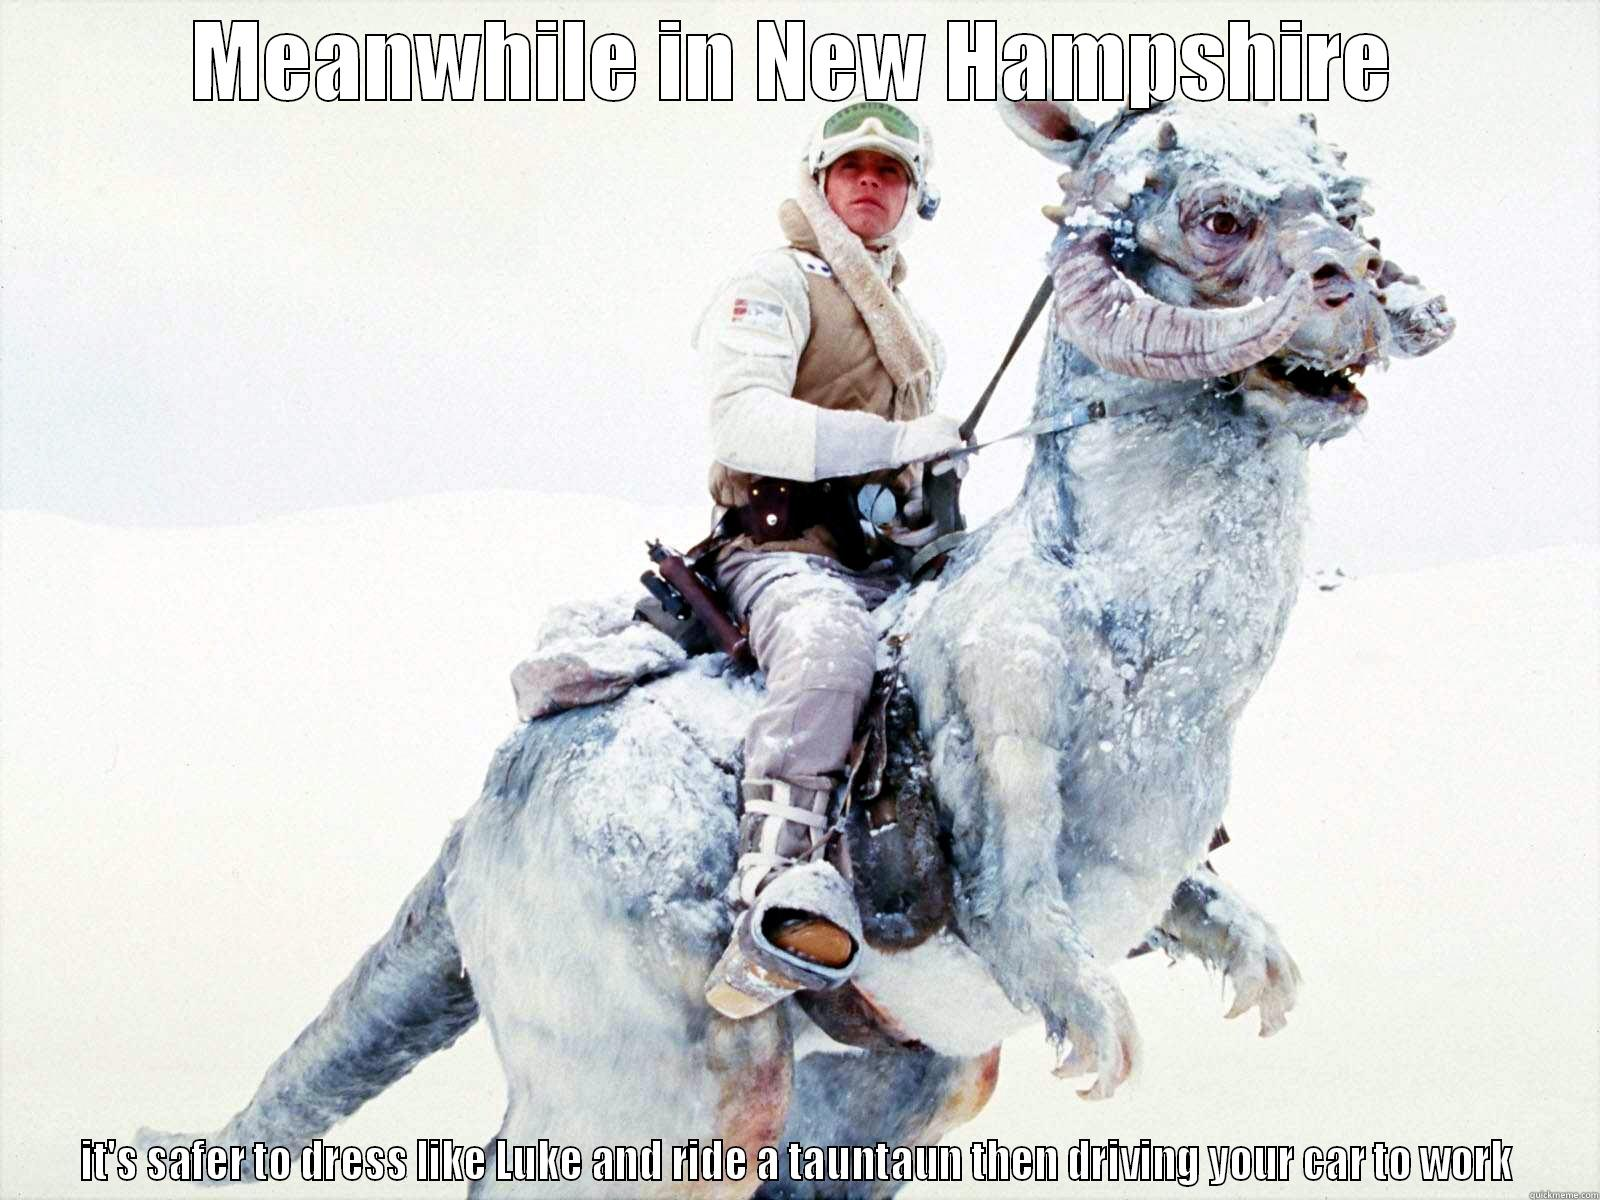 tauntaun 2 - MEANWHILE IN NEW HAMPSHIRE IT'S SAFER TO DRESS LIKE LUKE AND RIDE A TAUNTAUN THEN DRIVING YOUR CAR TO WORK Misc